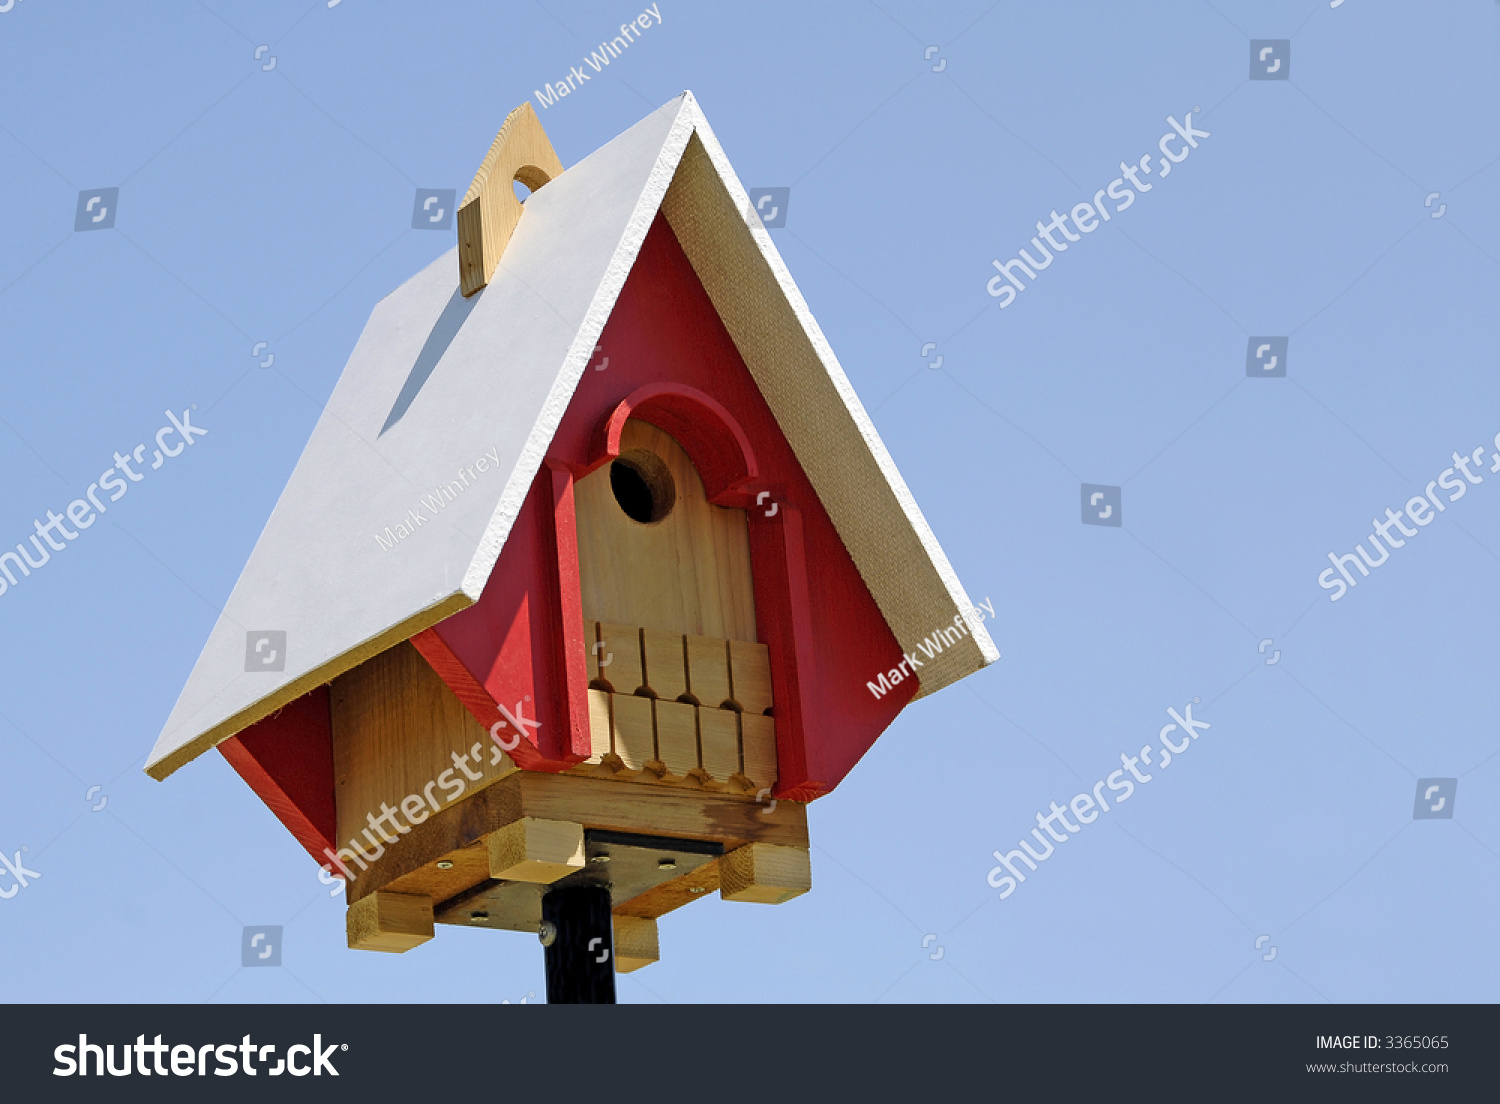 stock-photo-birdhouse-3365065.jpg